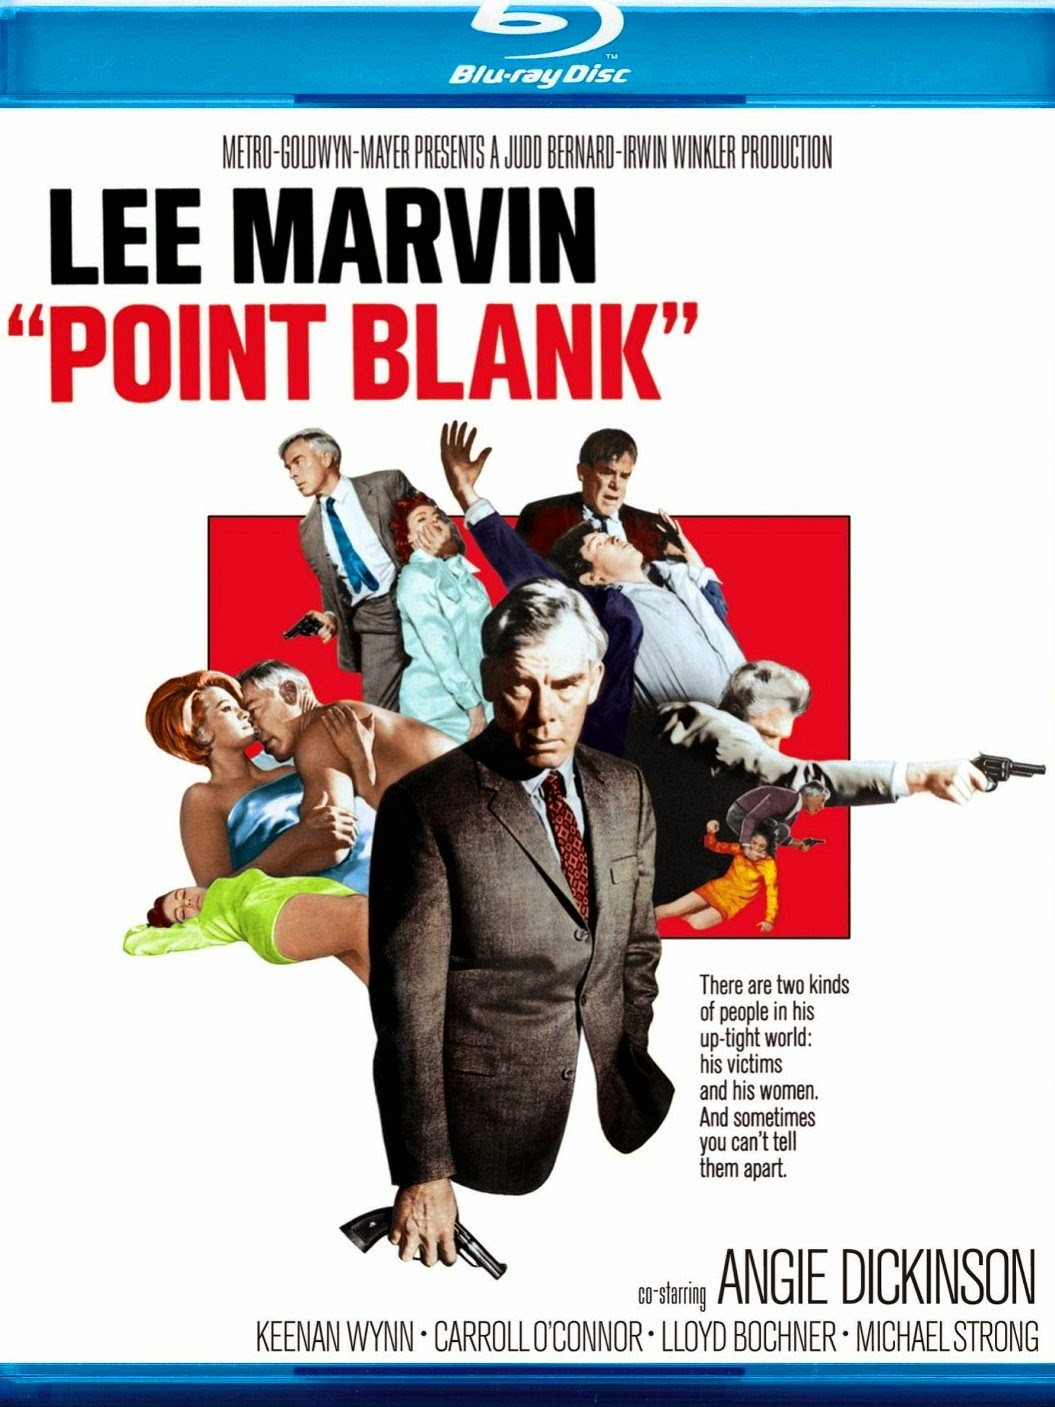 Will point blank be a movie